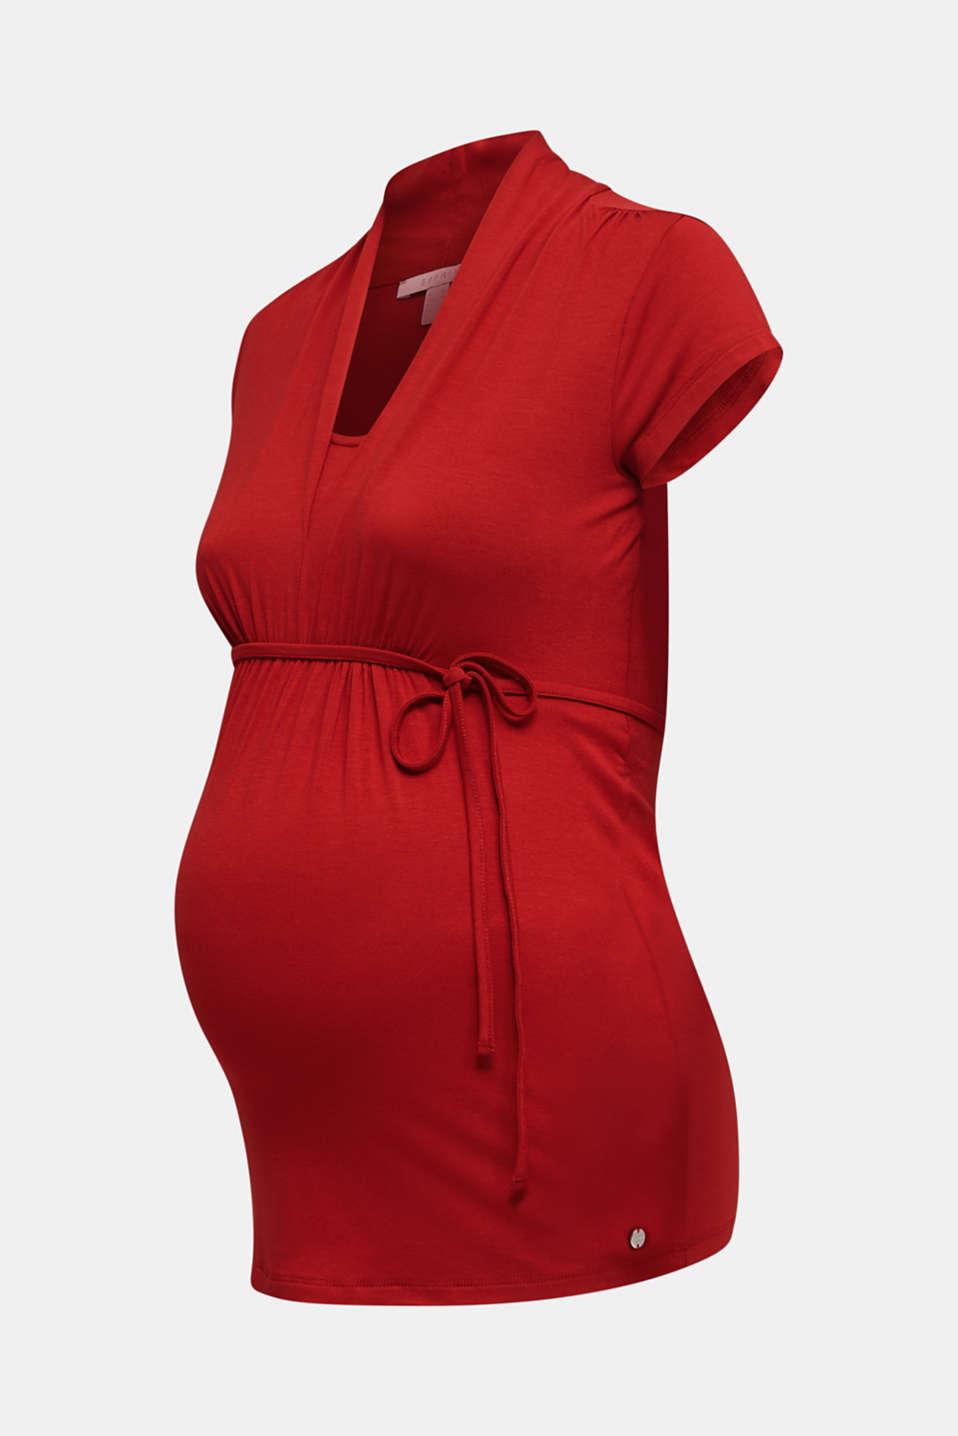 Nursing top made of stretch jersey with a shawl collar, LCRED, detail image number 8